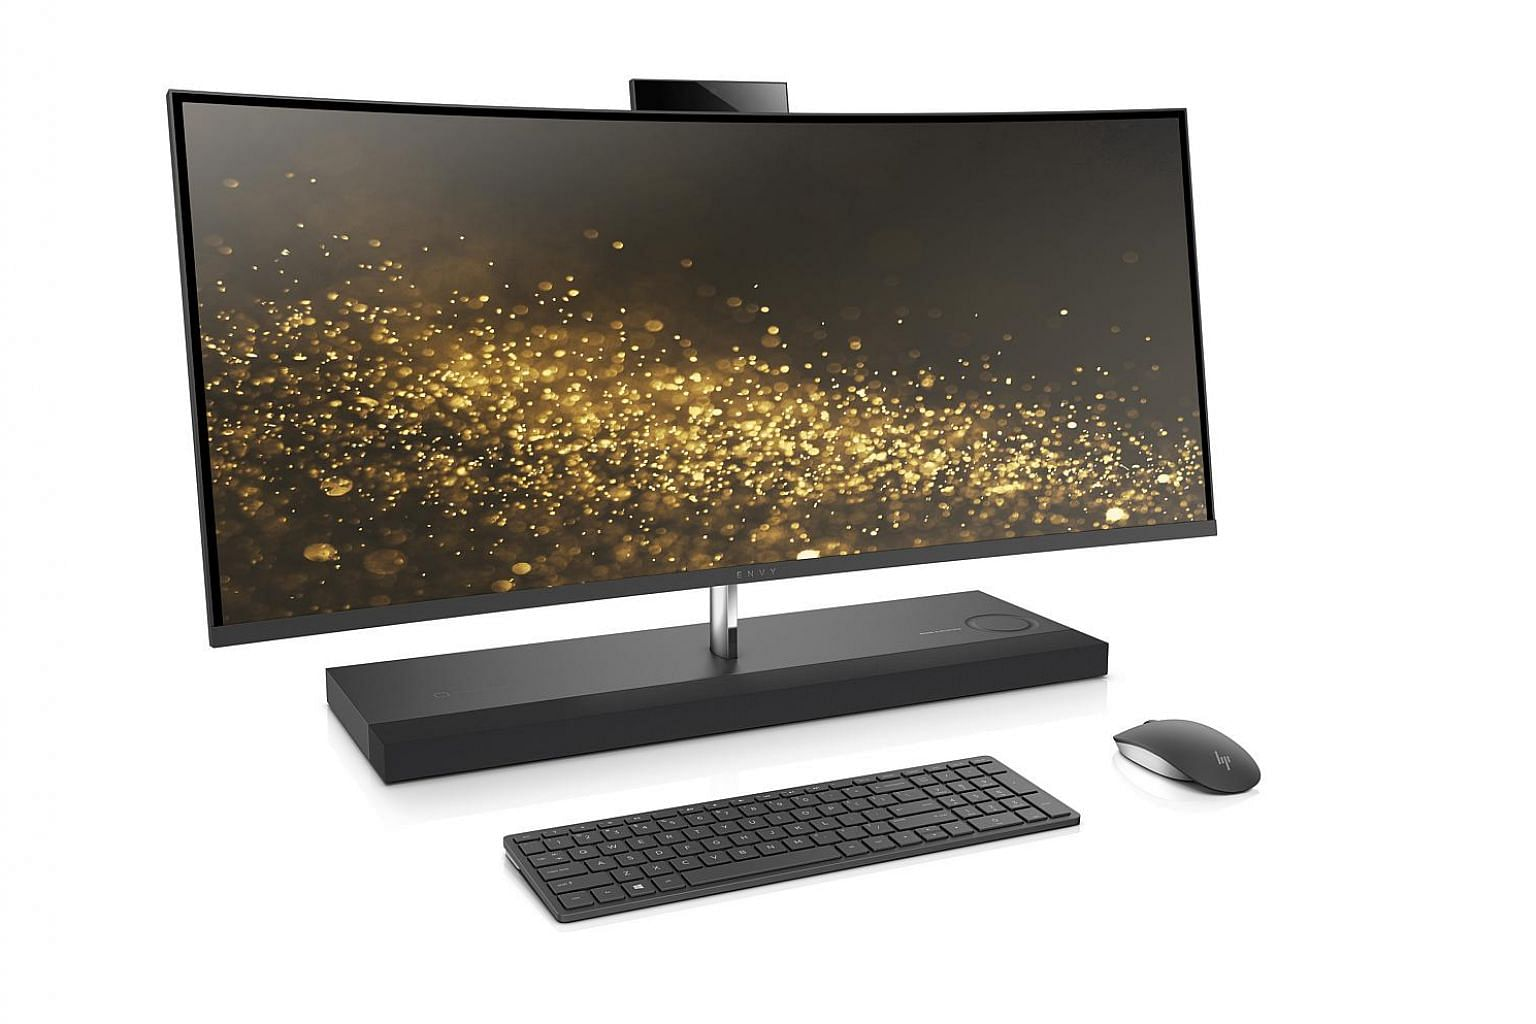 The HP Envy's 34-inch curved display is certified by Technicolor for colour accuracy.